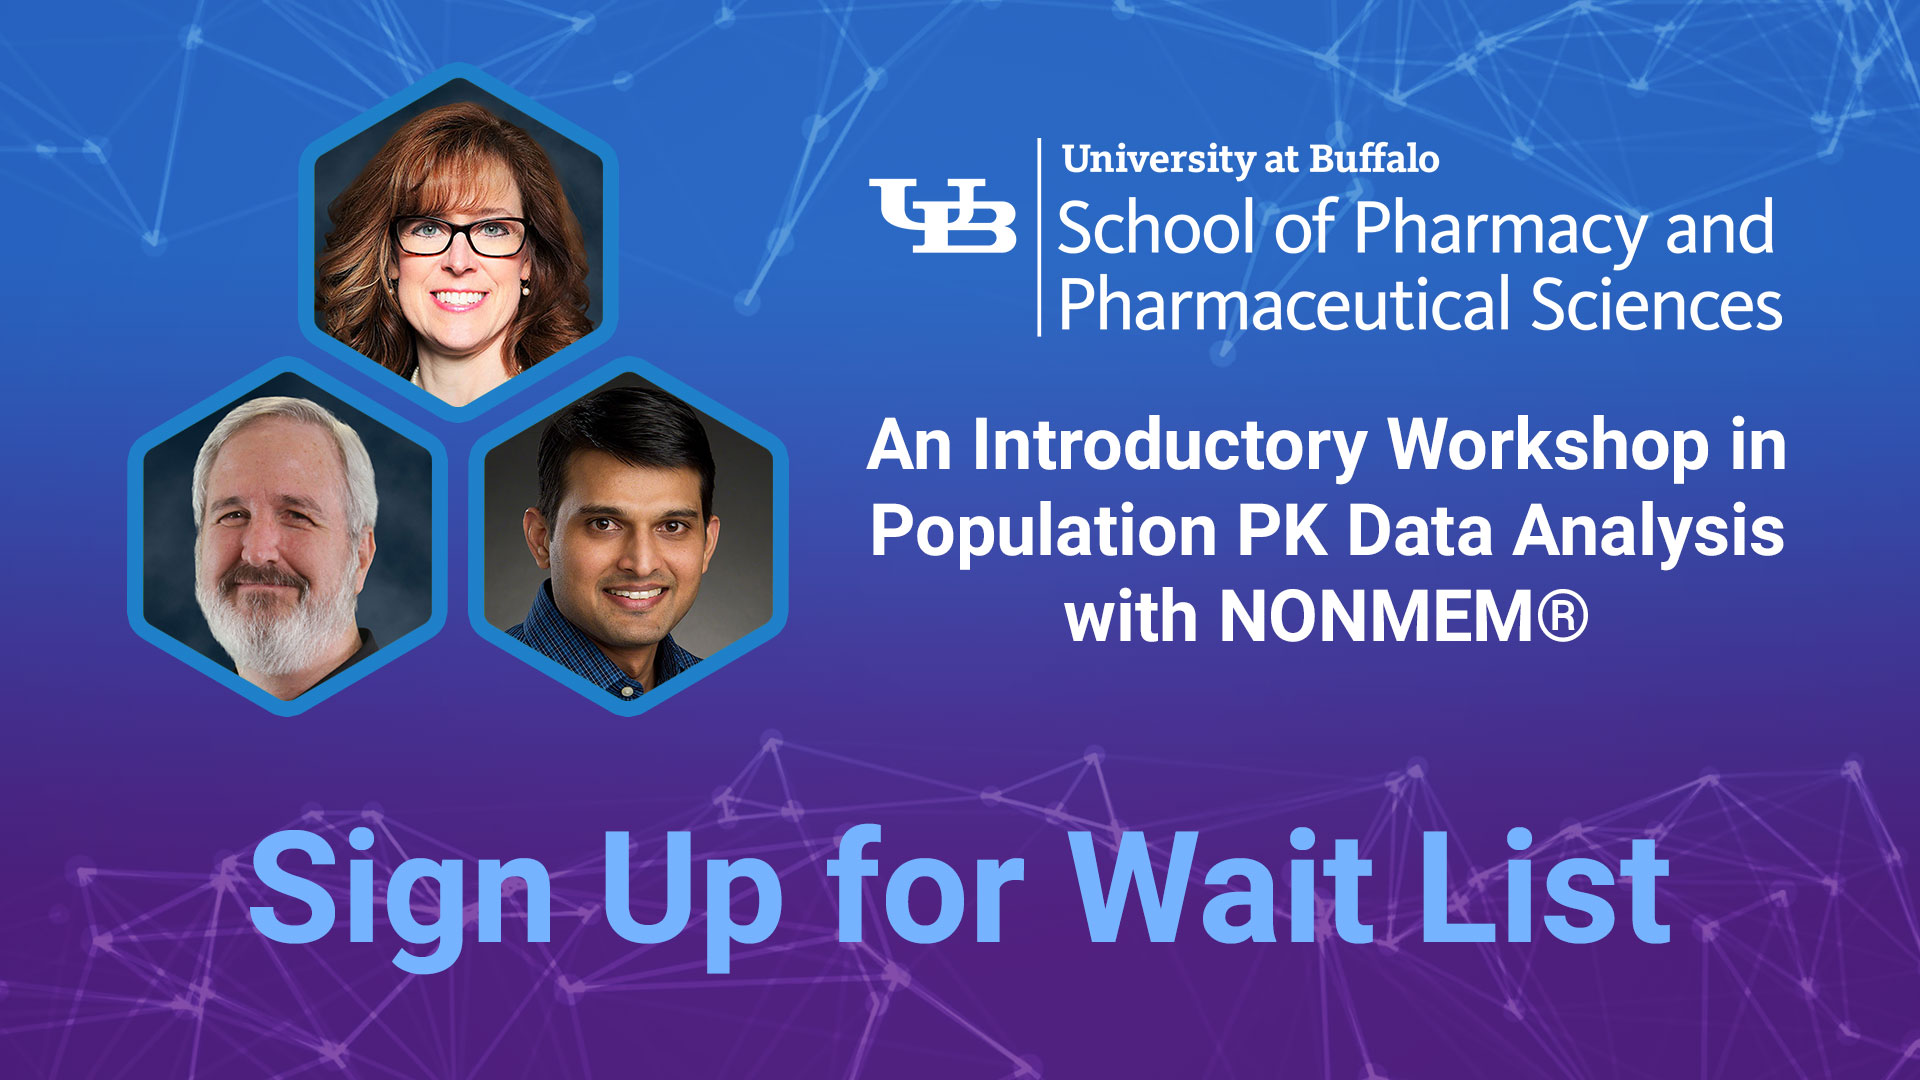 cognigen school of pharmacy and pharmaceutical sciences an introductory workshop in population data analysis with NONMEM sign up for waitlist